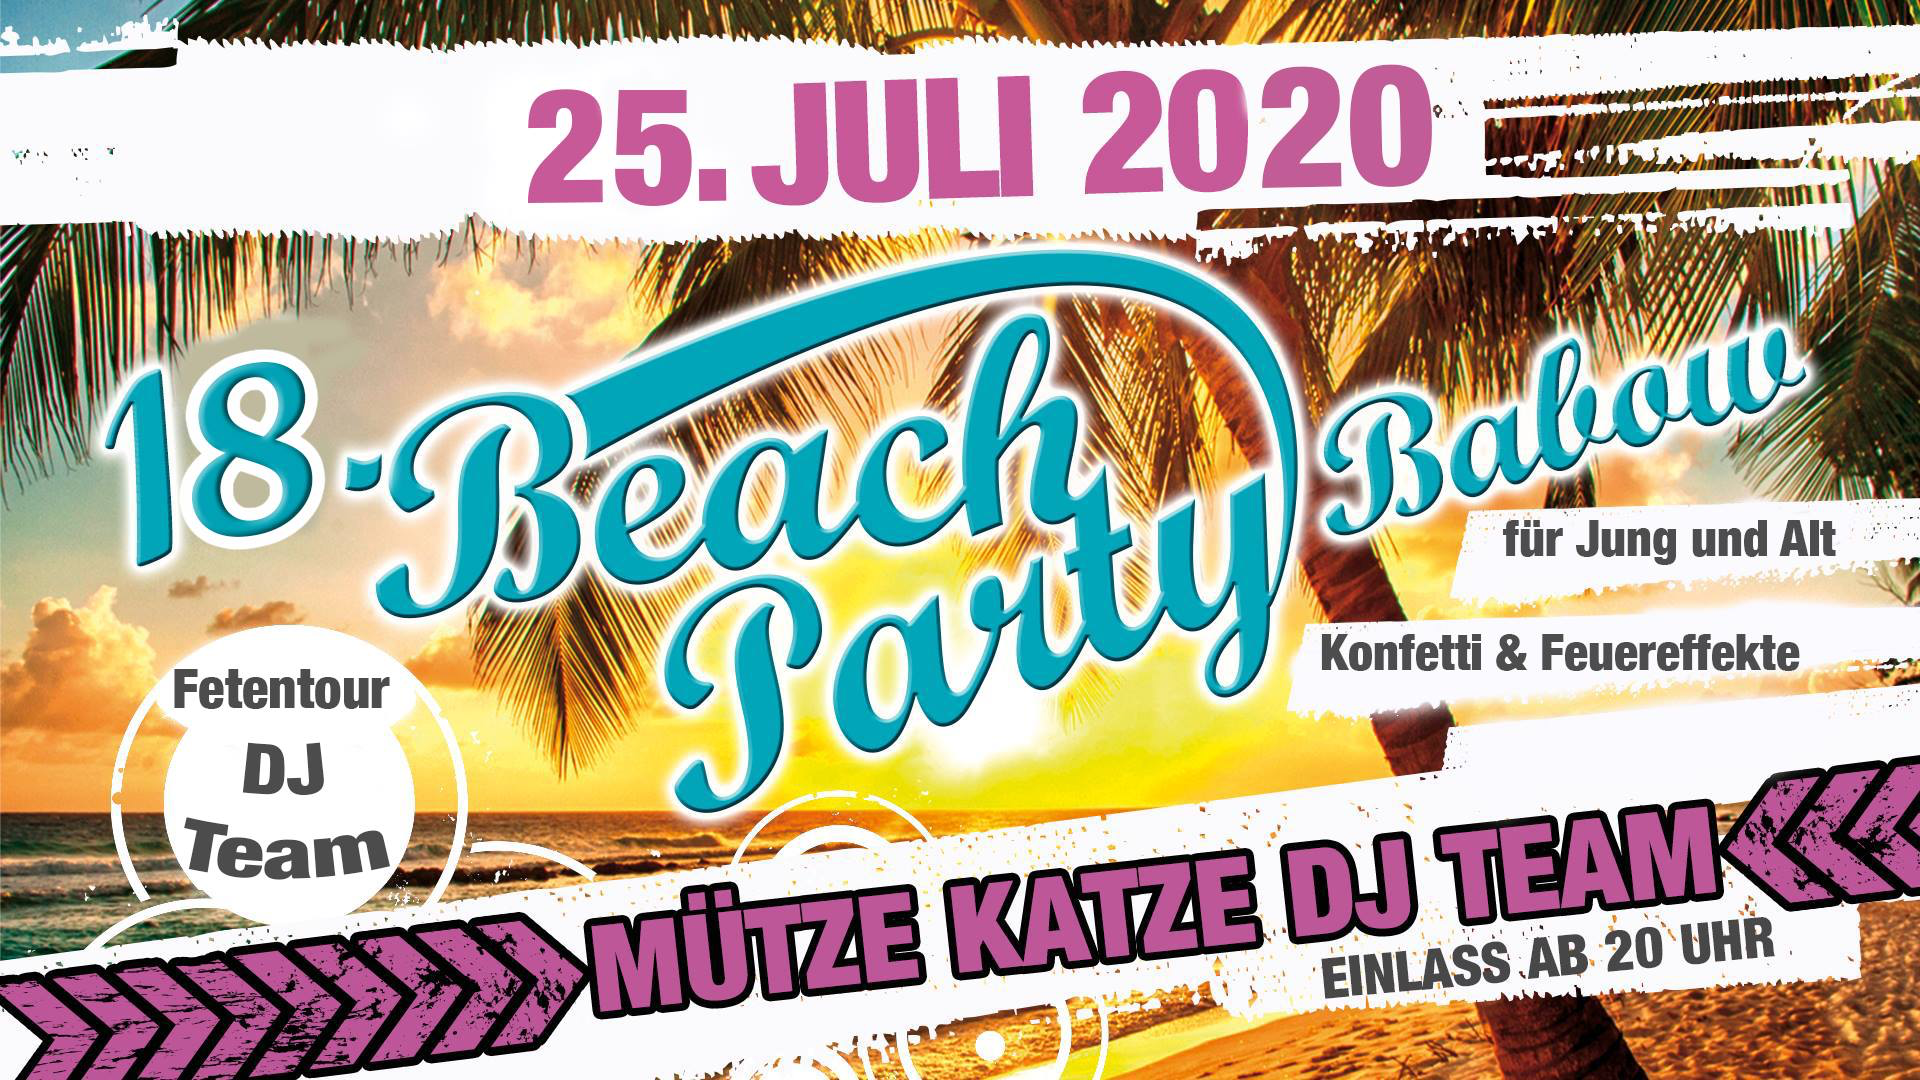 18. Beach Party Babow mit MÜTZE KATZE DJ Team – 25.07.2020 – Babow Kolkwitz OT Babow - 25.07.2020